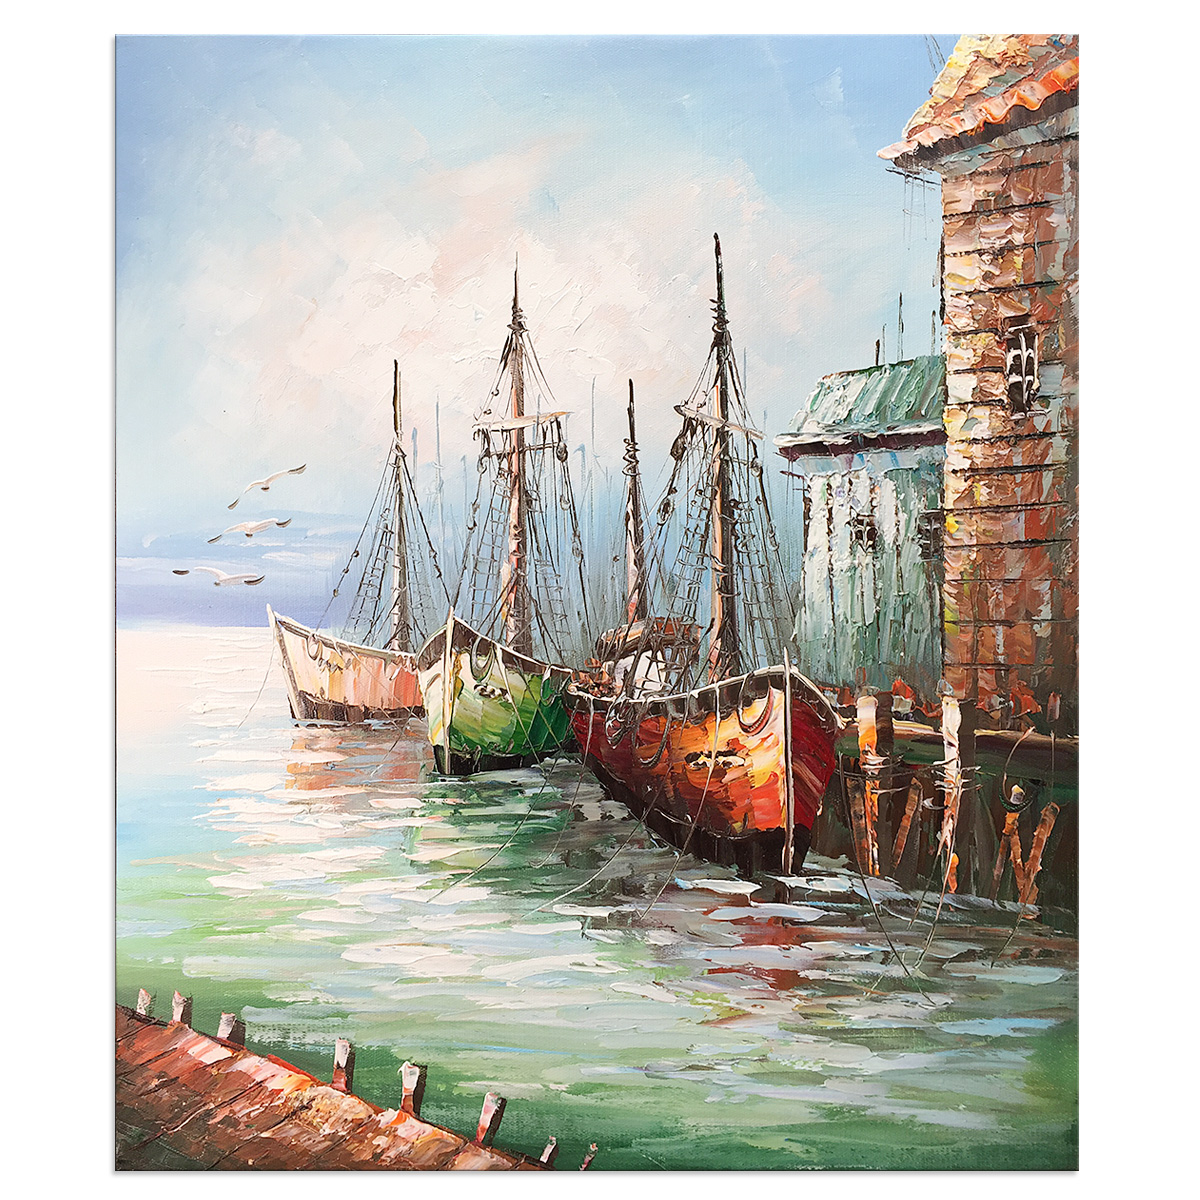 Modern Hand Painted Oil Paintings on Canvas Stretched and Framed Contemporary Abstract Boat Artwork